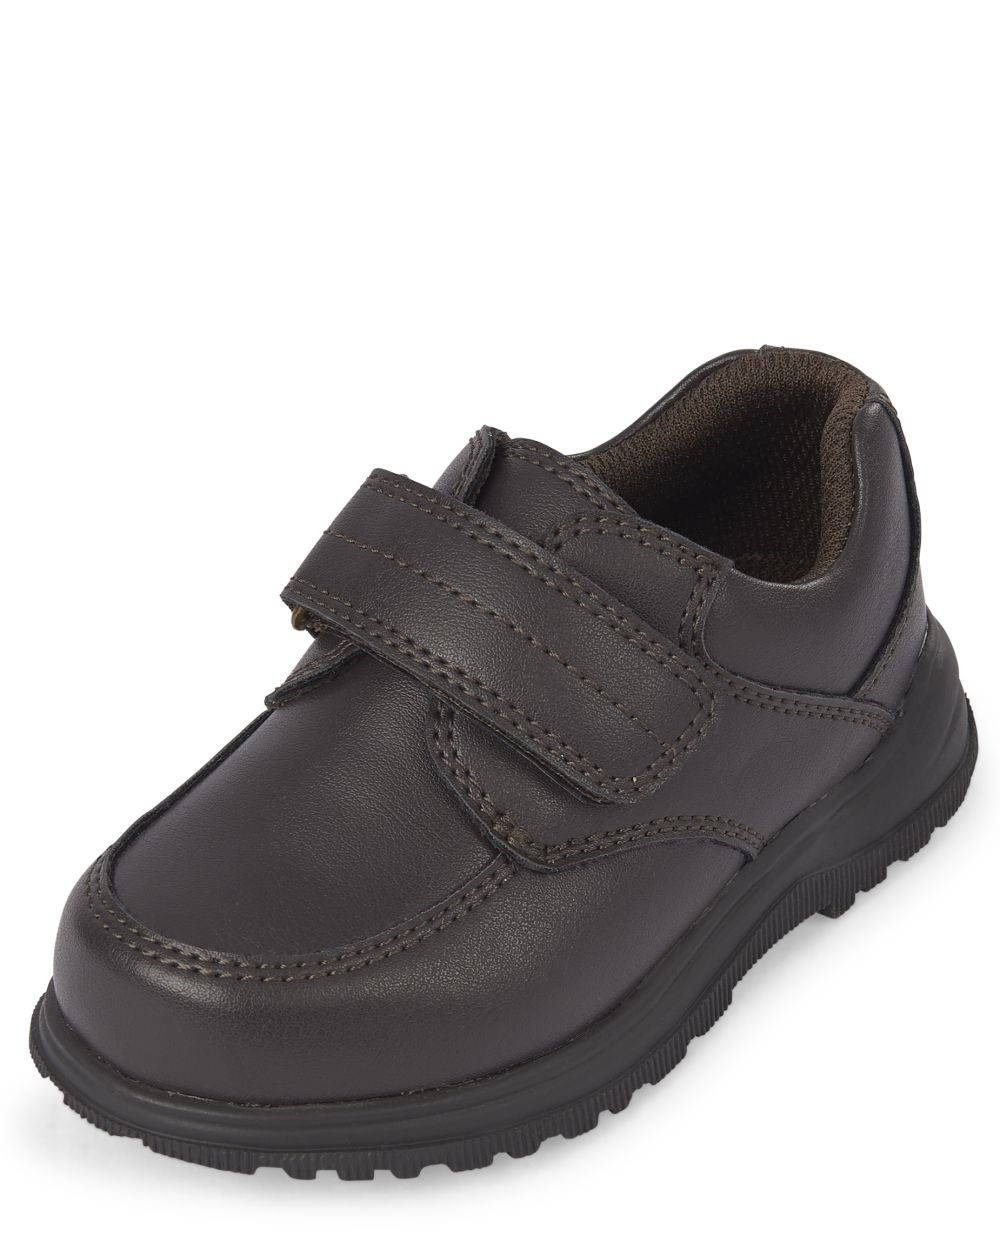 Toddler Boys Uniform Dress Shoes